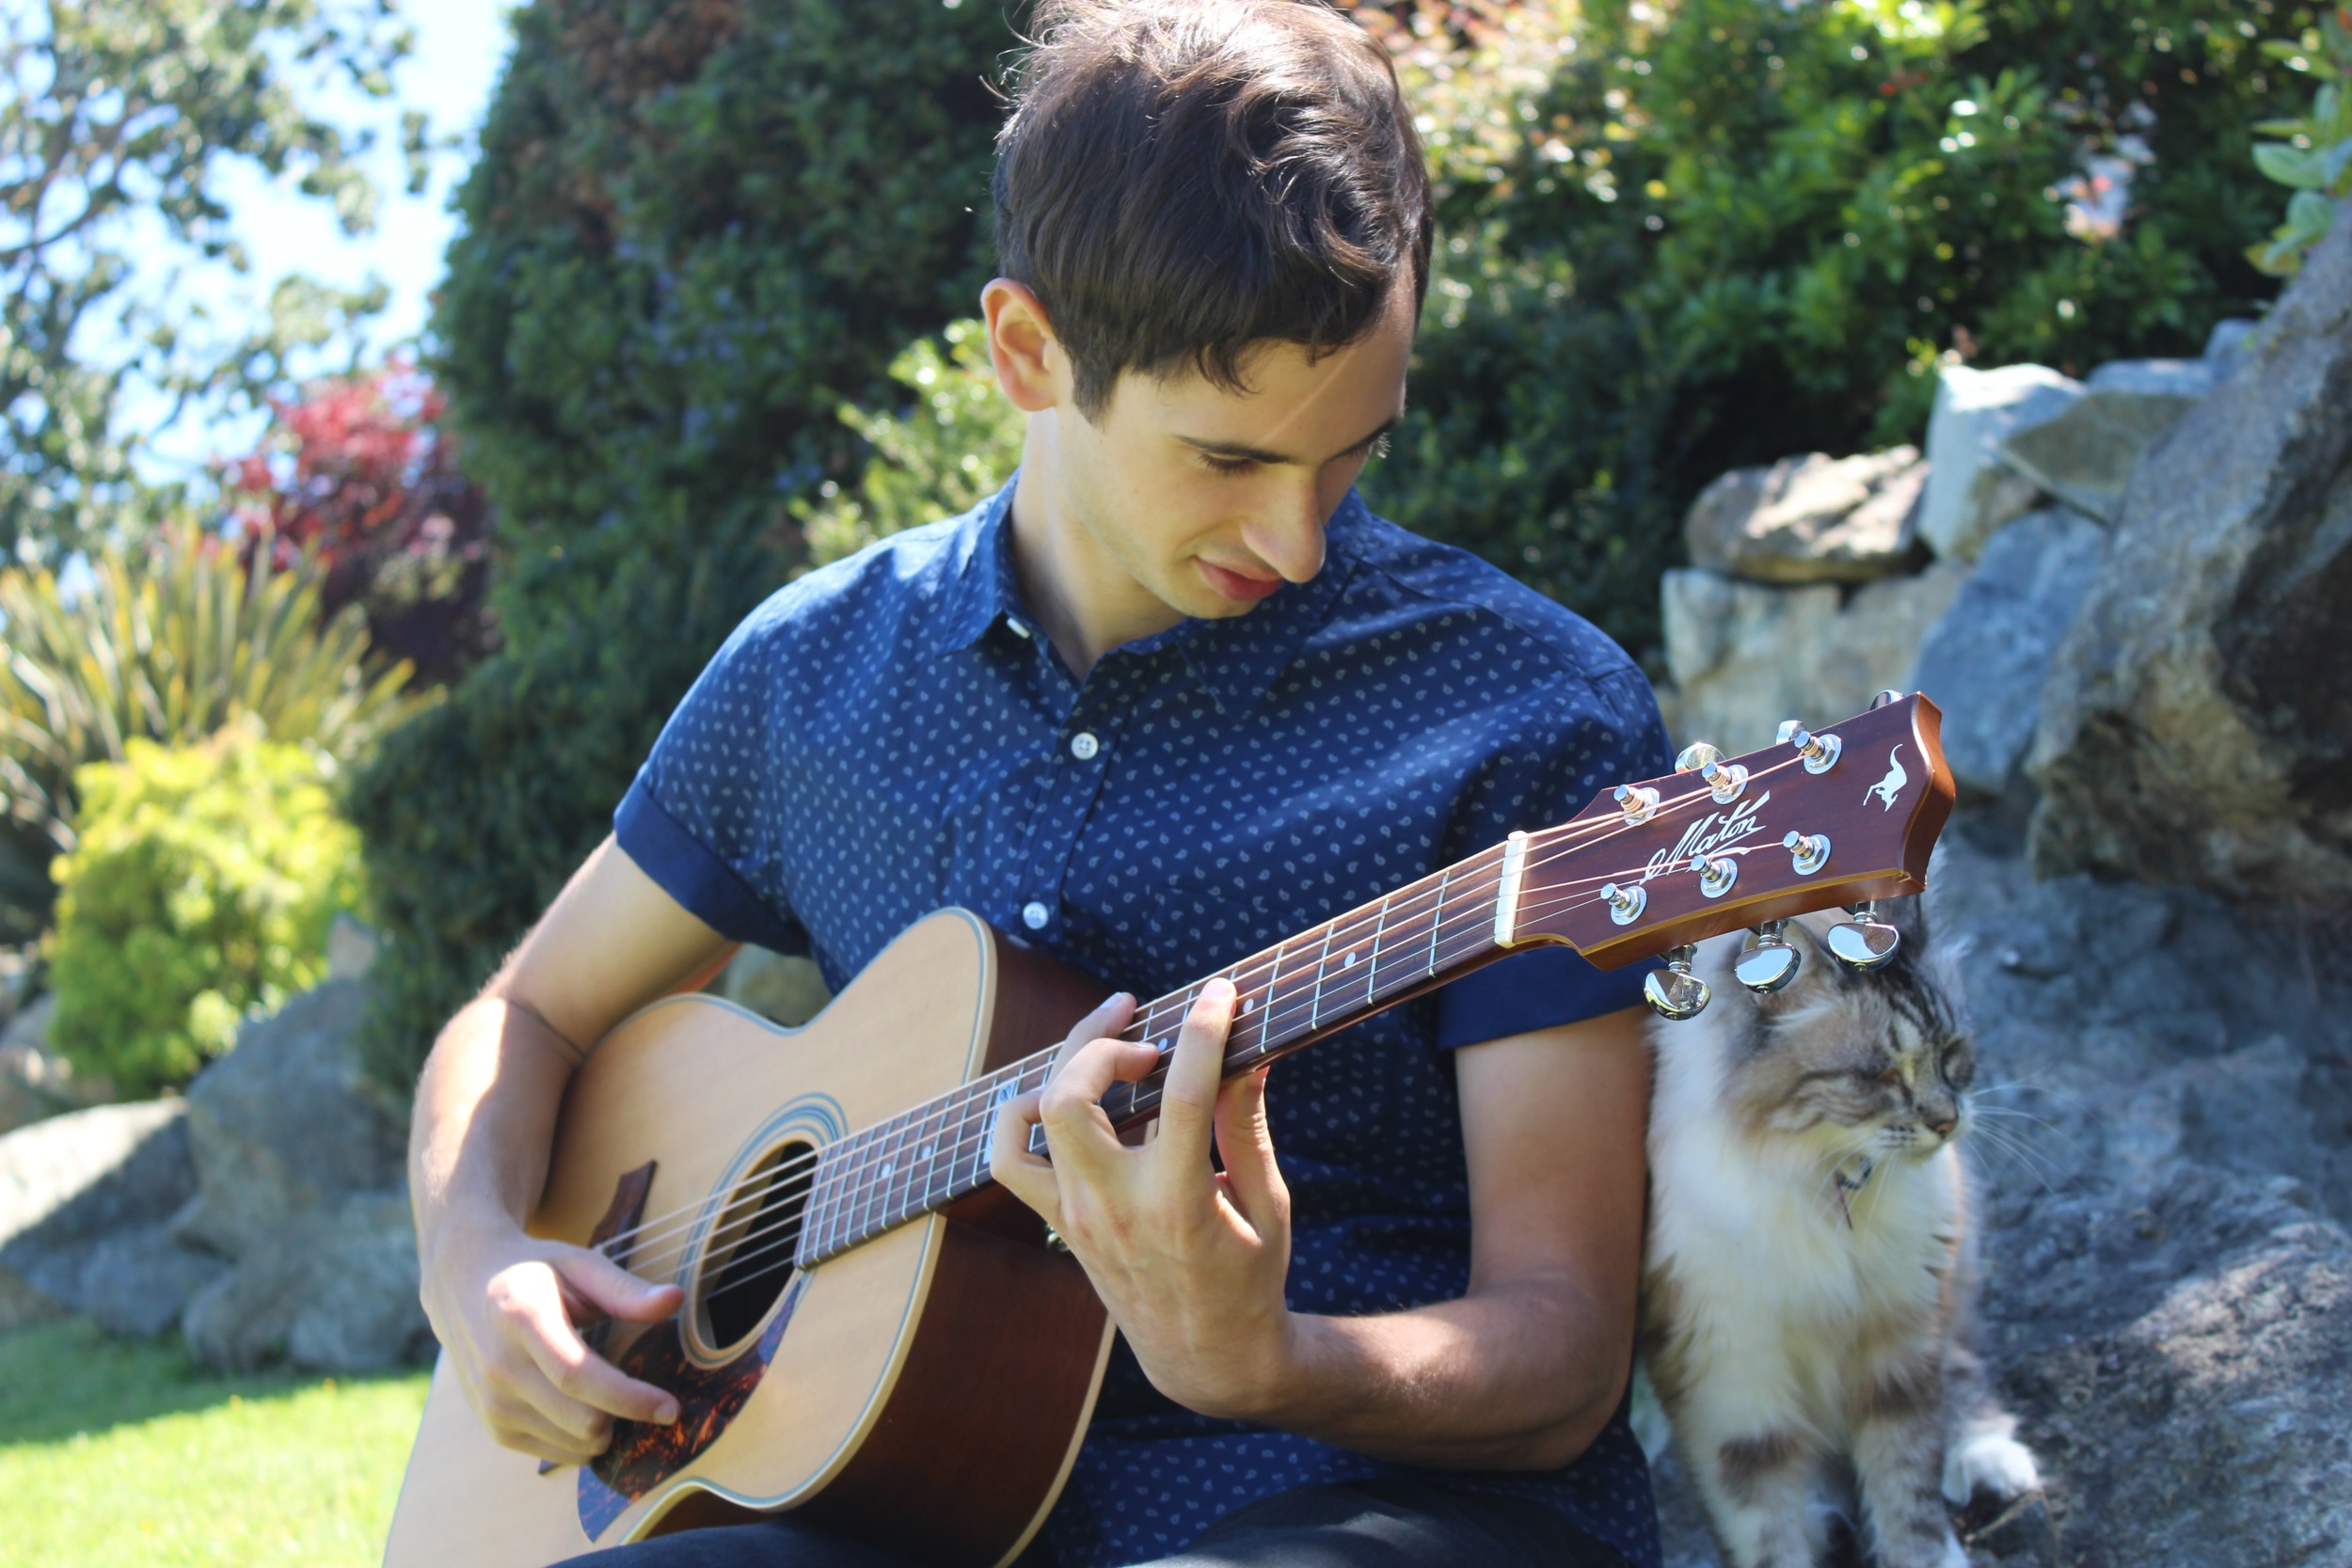 Charlie teaches a cat to name the chord he is playing, without her peeking.